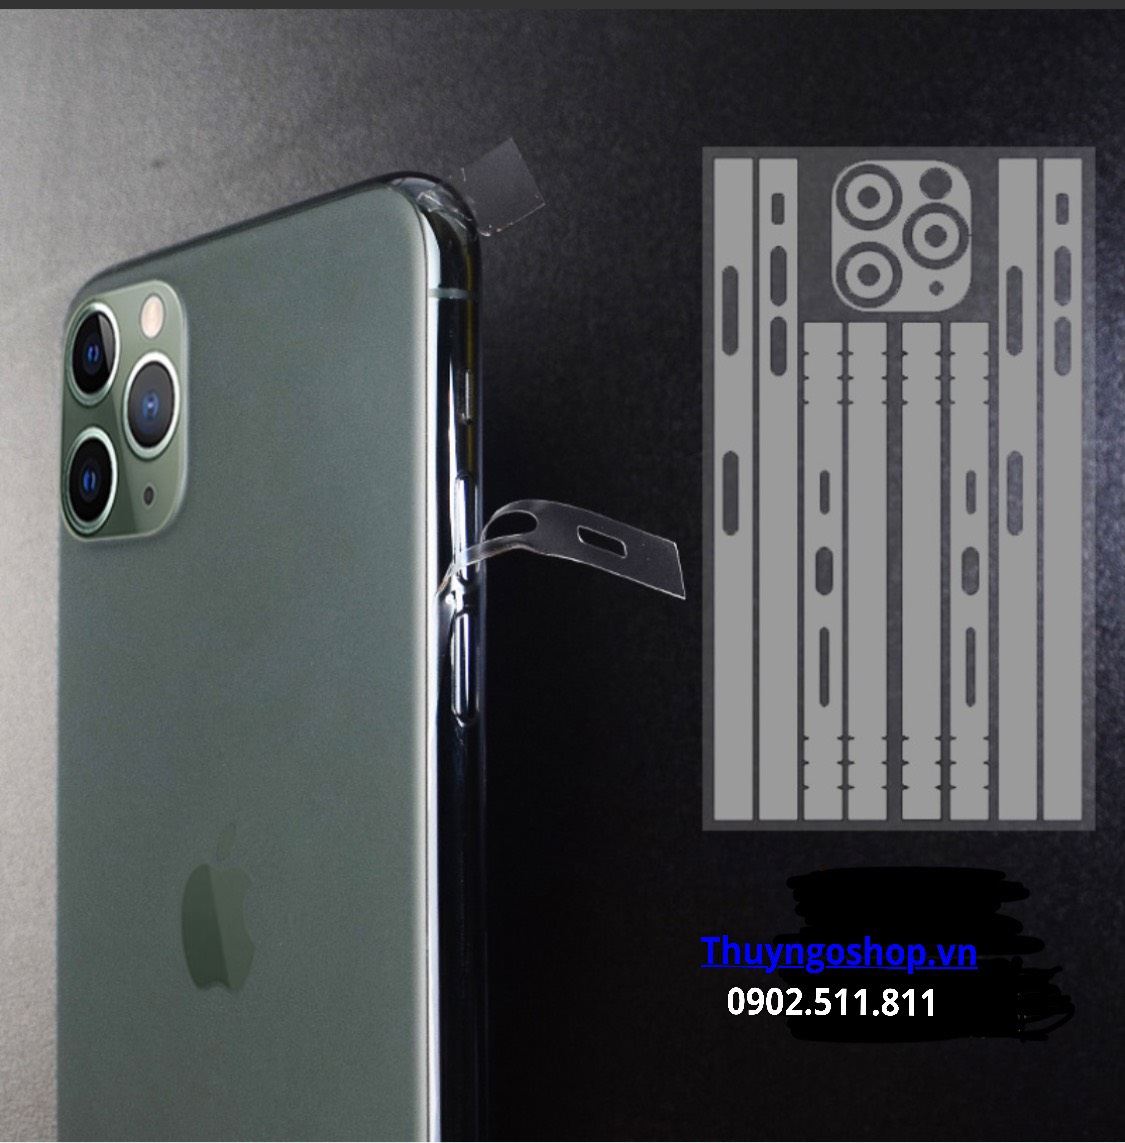 PPF 4 cạnh viền trong suốt / mờ Iphone XR